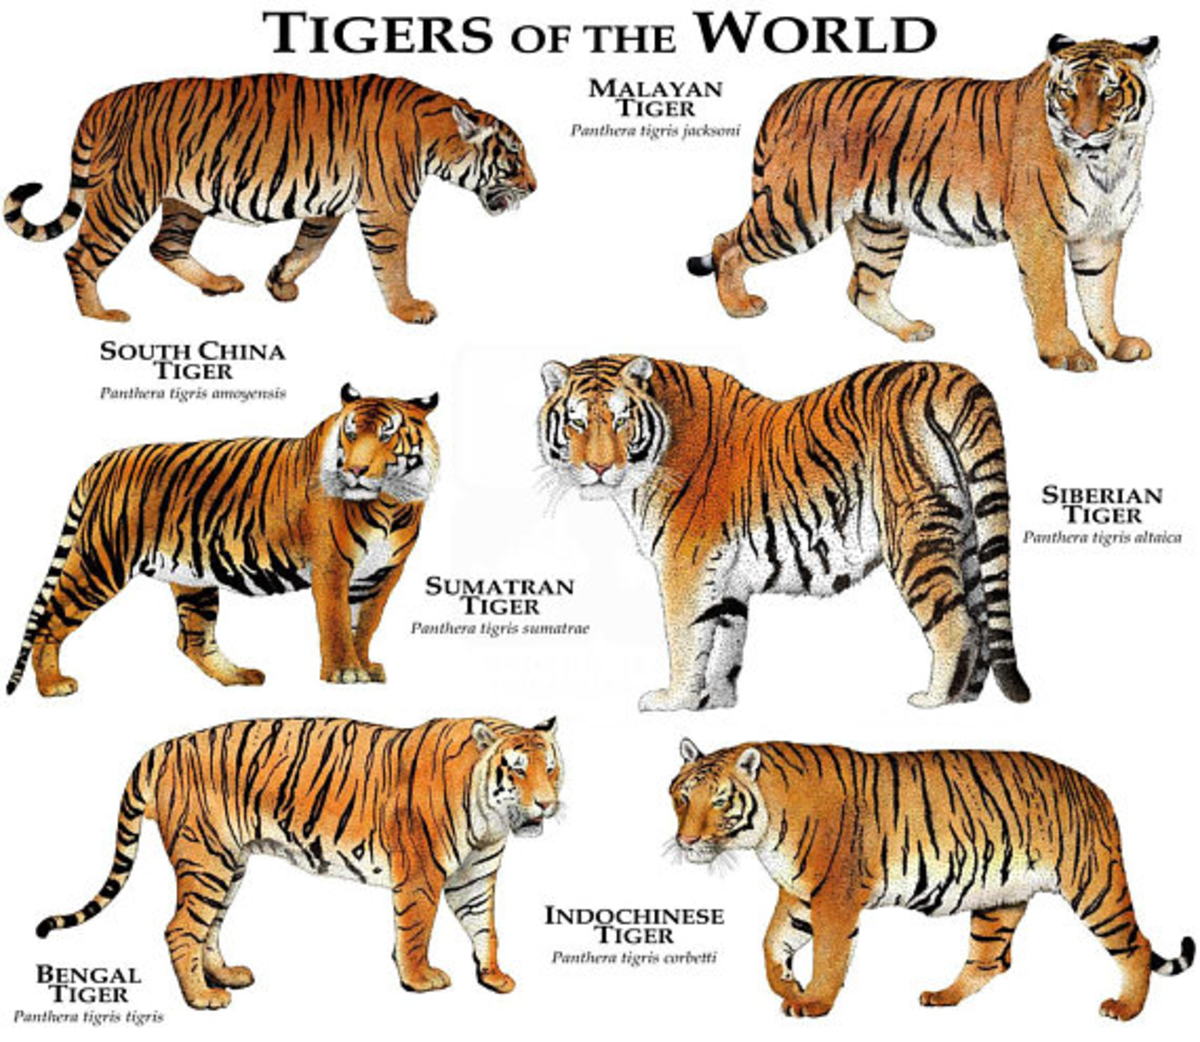 Tigers of the World: Facts and Different Species